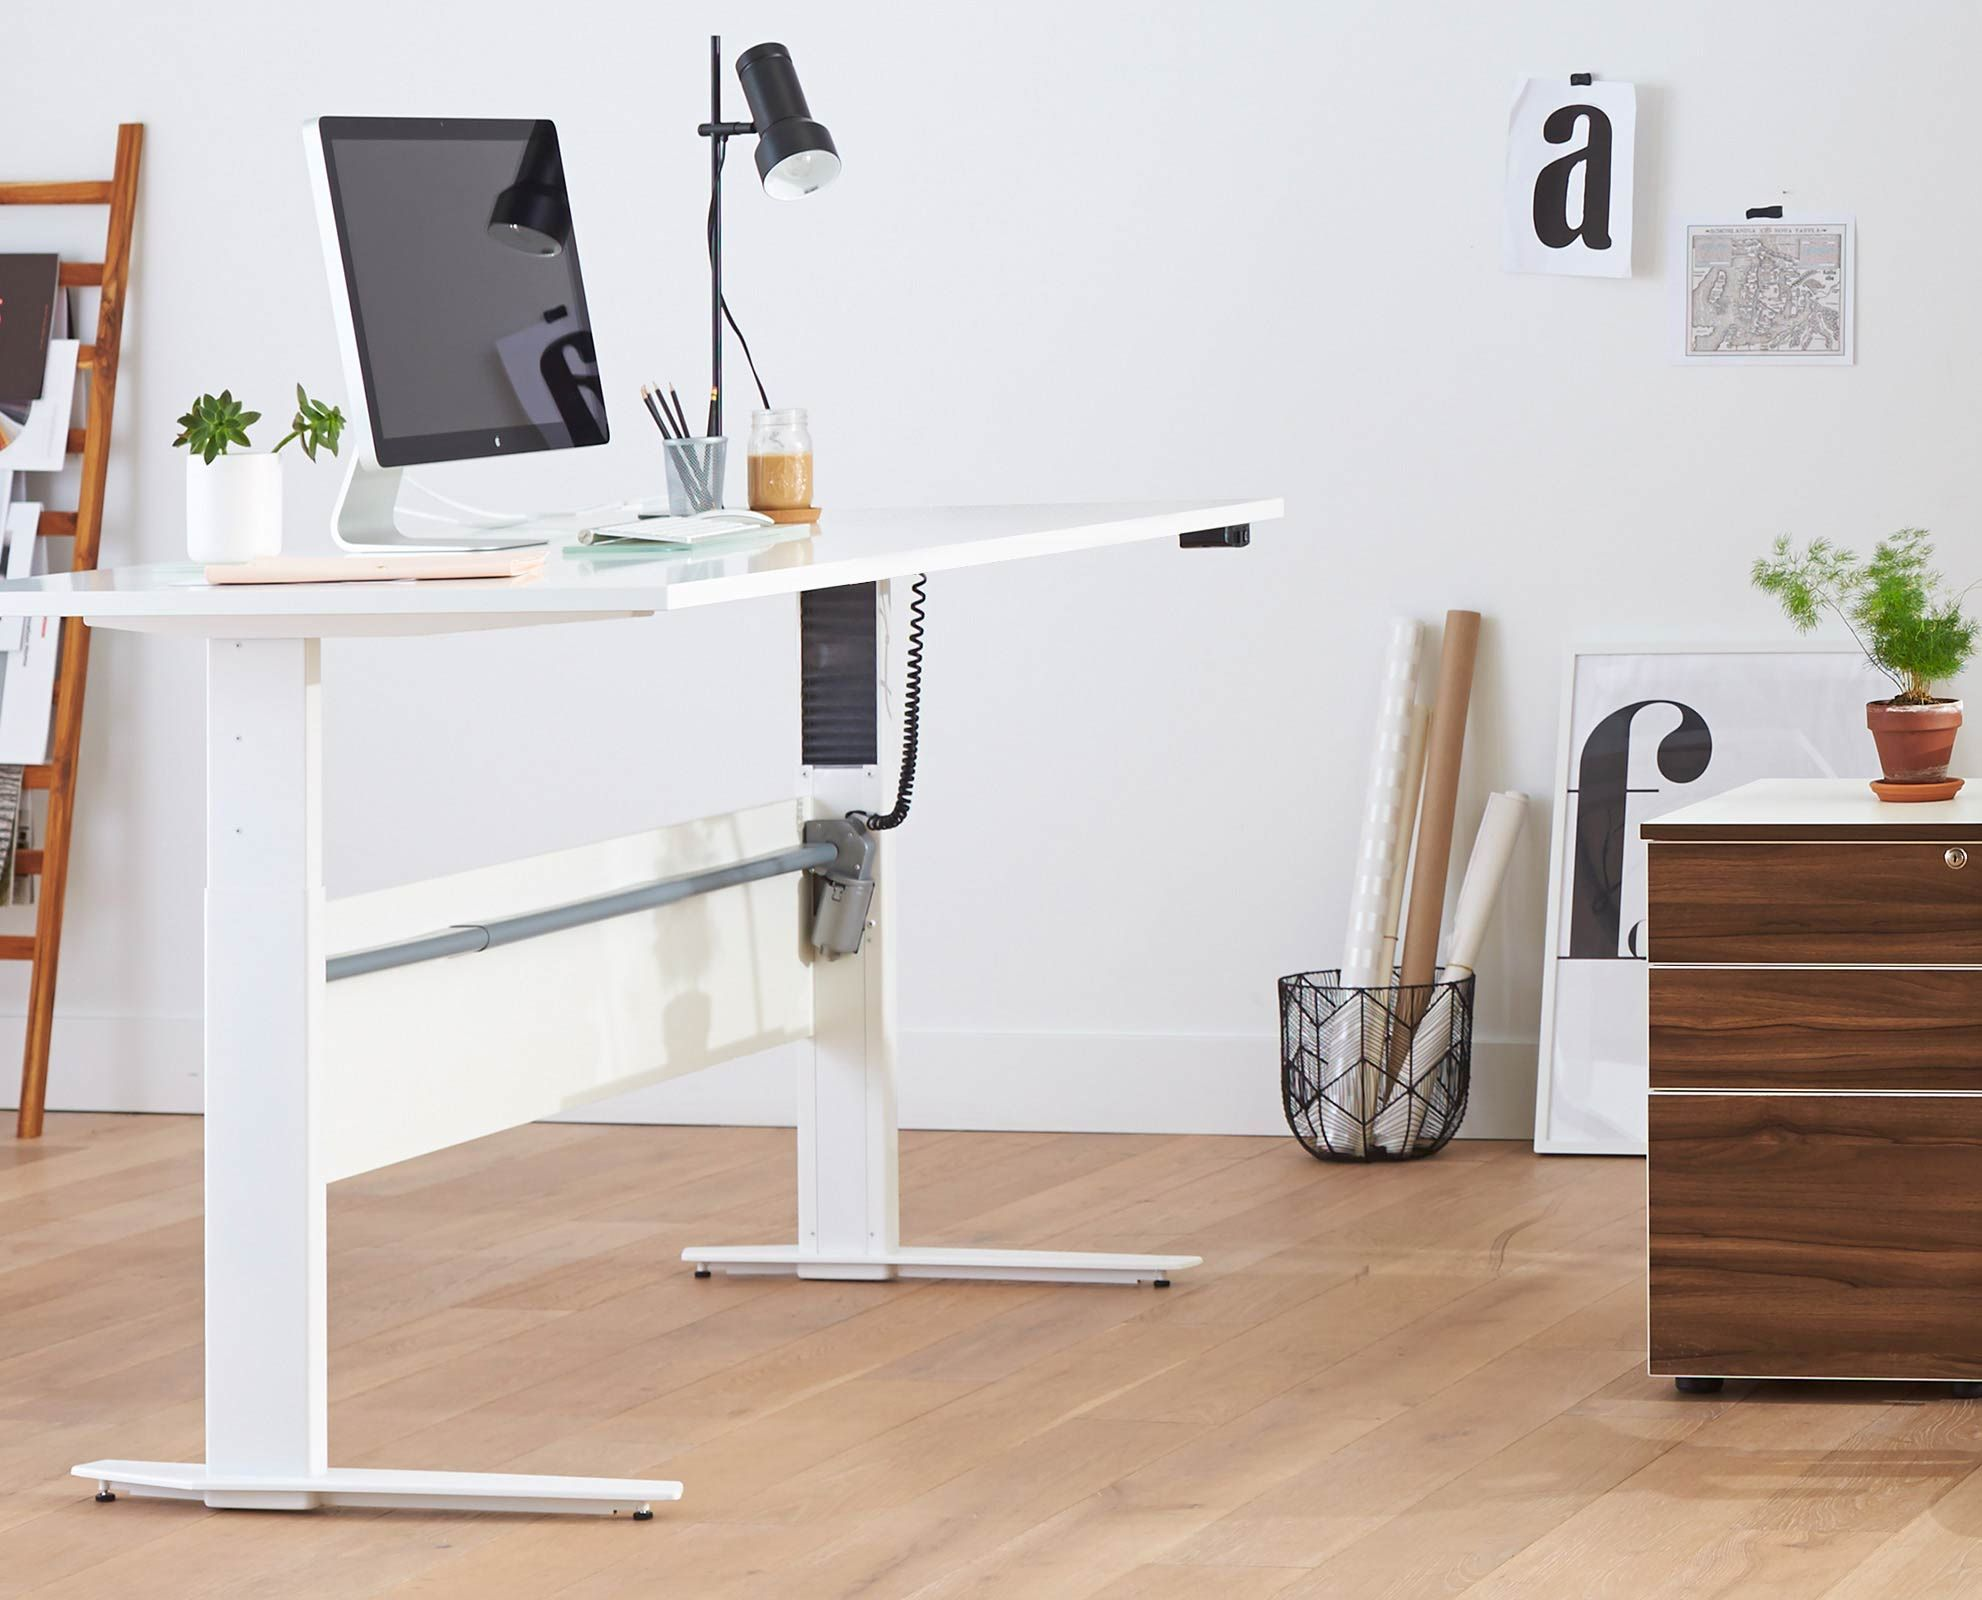 Dania Transform The Way You Work With Our Network Plus Sit Stand Desk Sleek Home Office Design Sit Stand Desk Scandinavian Design Desk